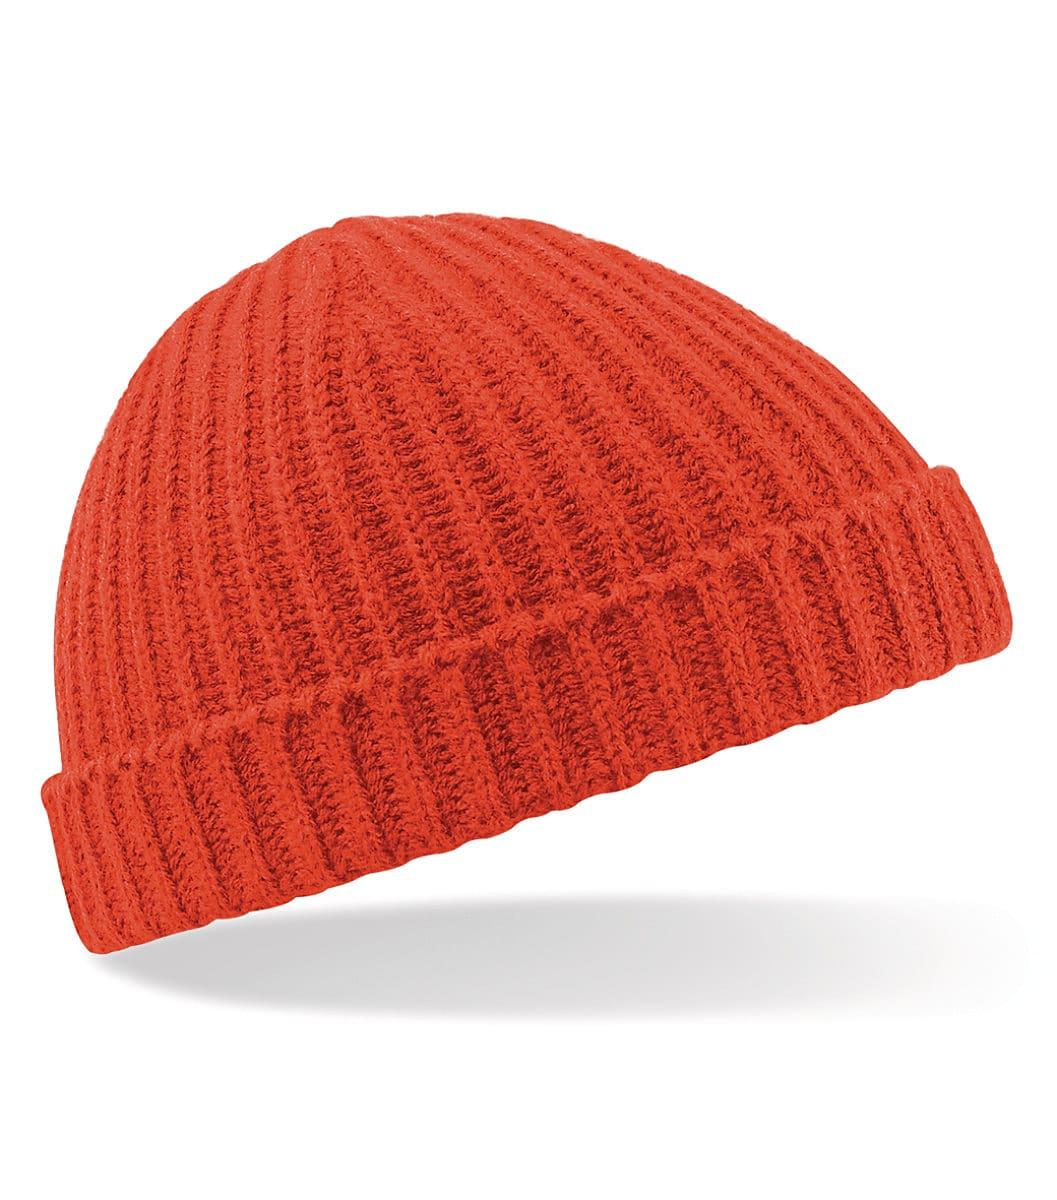 Beechfield Trawler Beanie Hat in Fire Red (Product Code: B460)